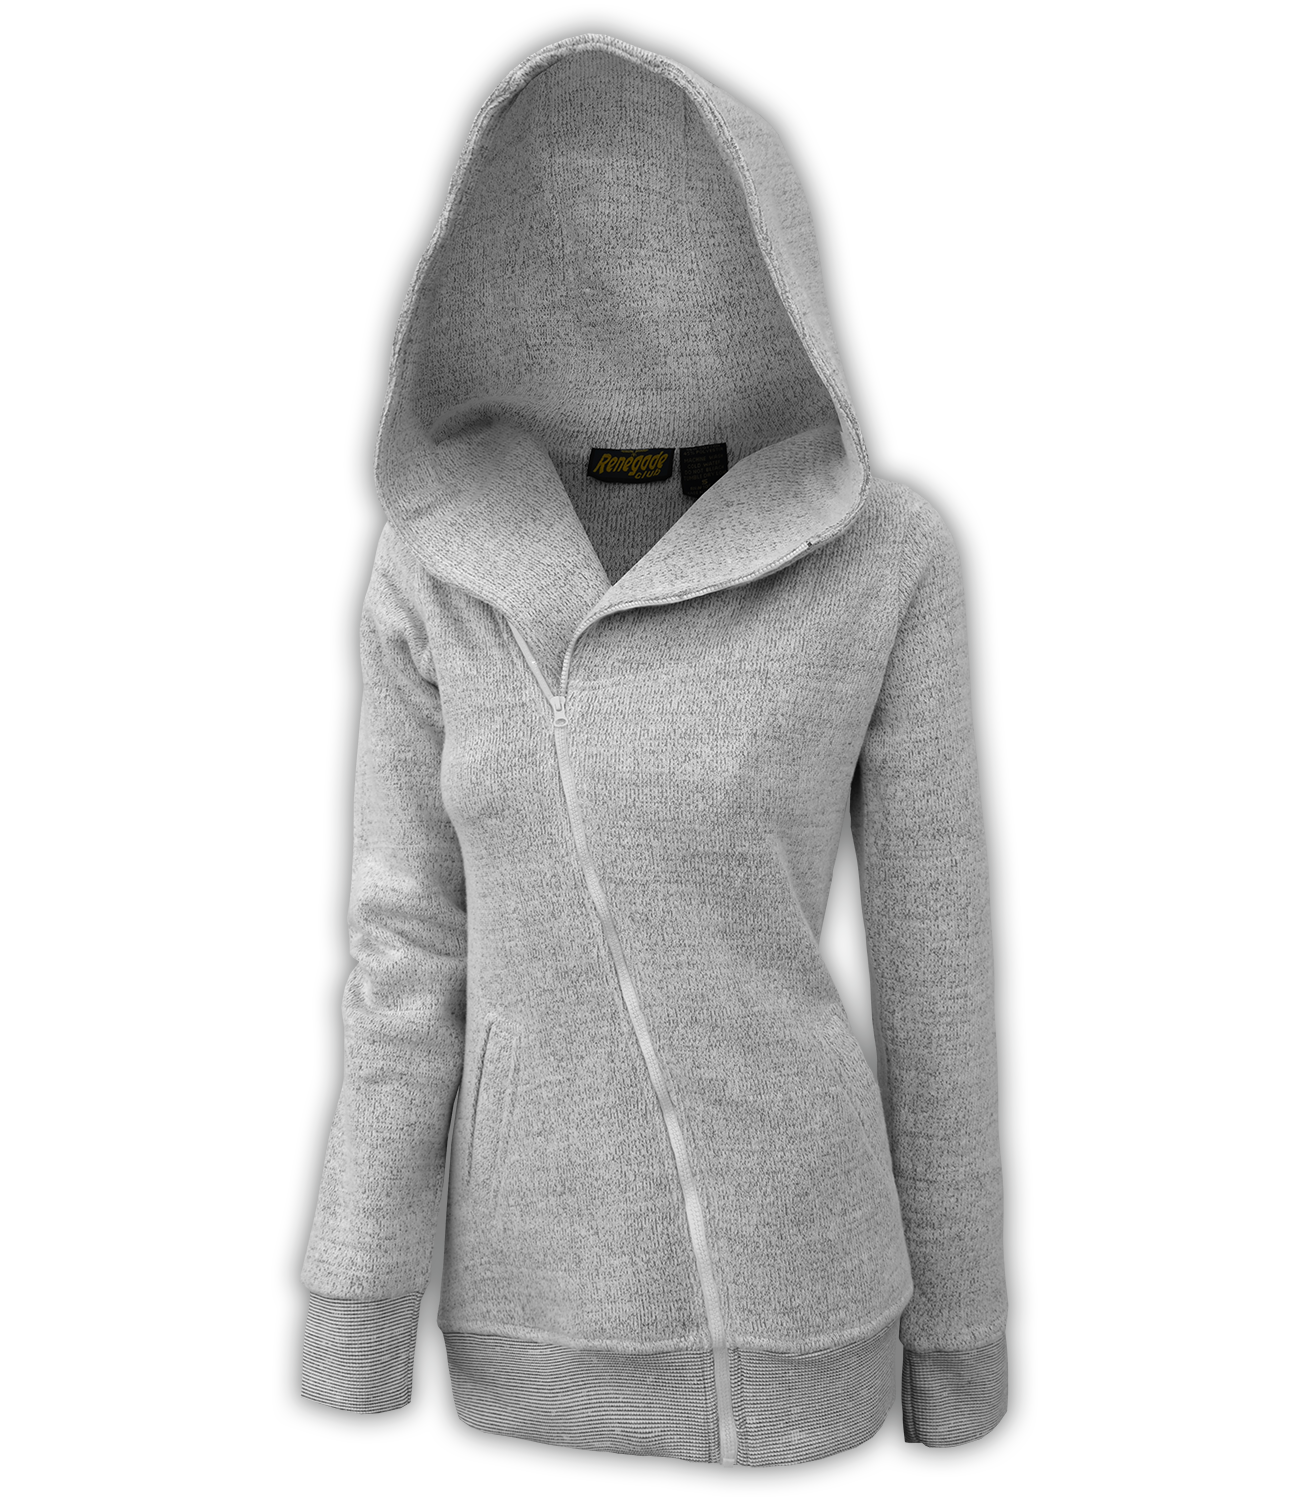 renegade club womens fleece jacket, diagonal full zipper, nantucket fleece, oversized hood, salt and pepper, white, gray